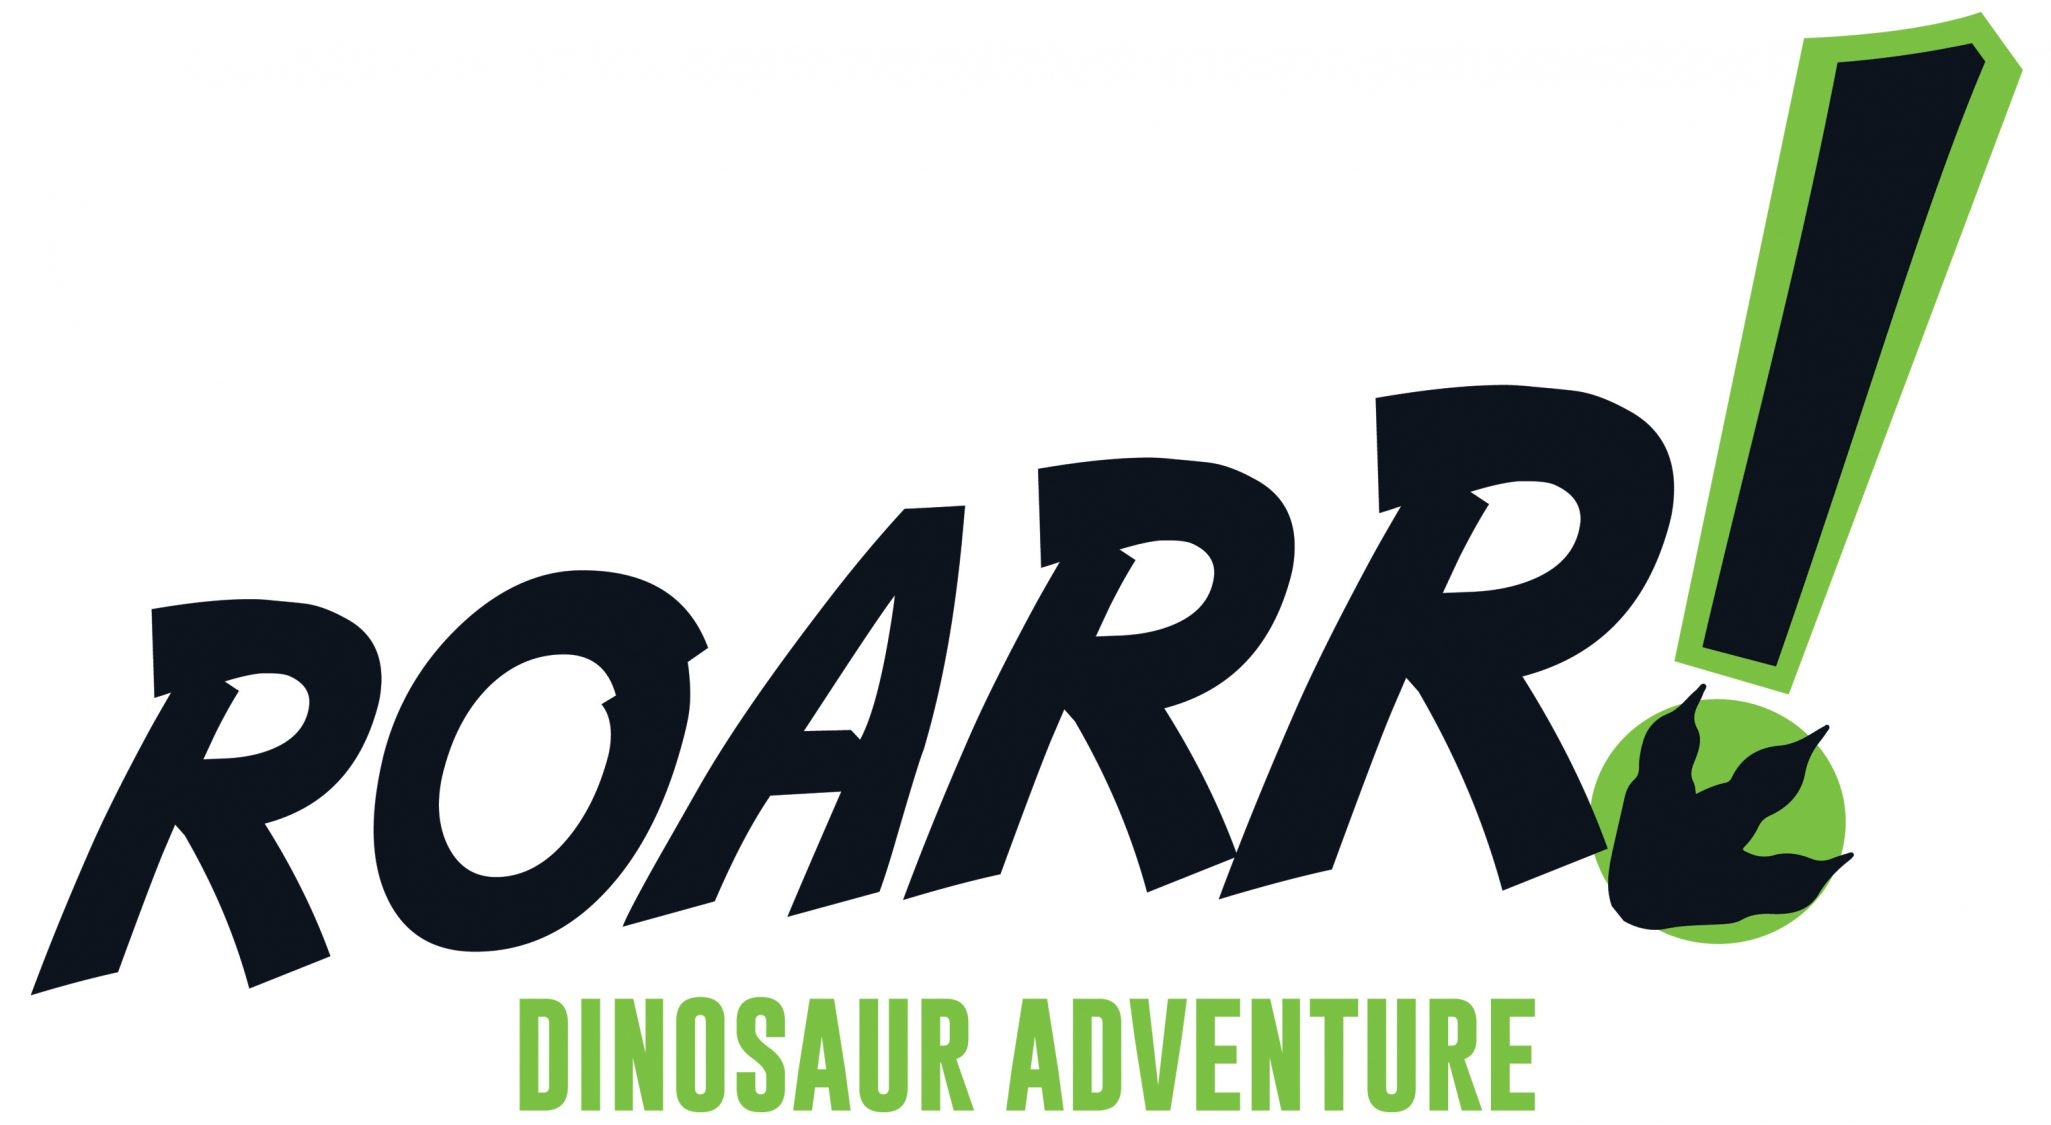 Link to http://www.roarrdinosauradventure.co.uk/